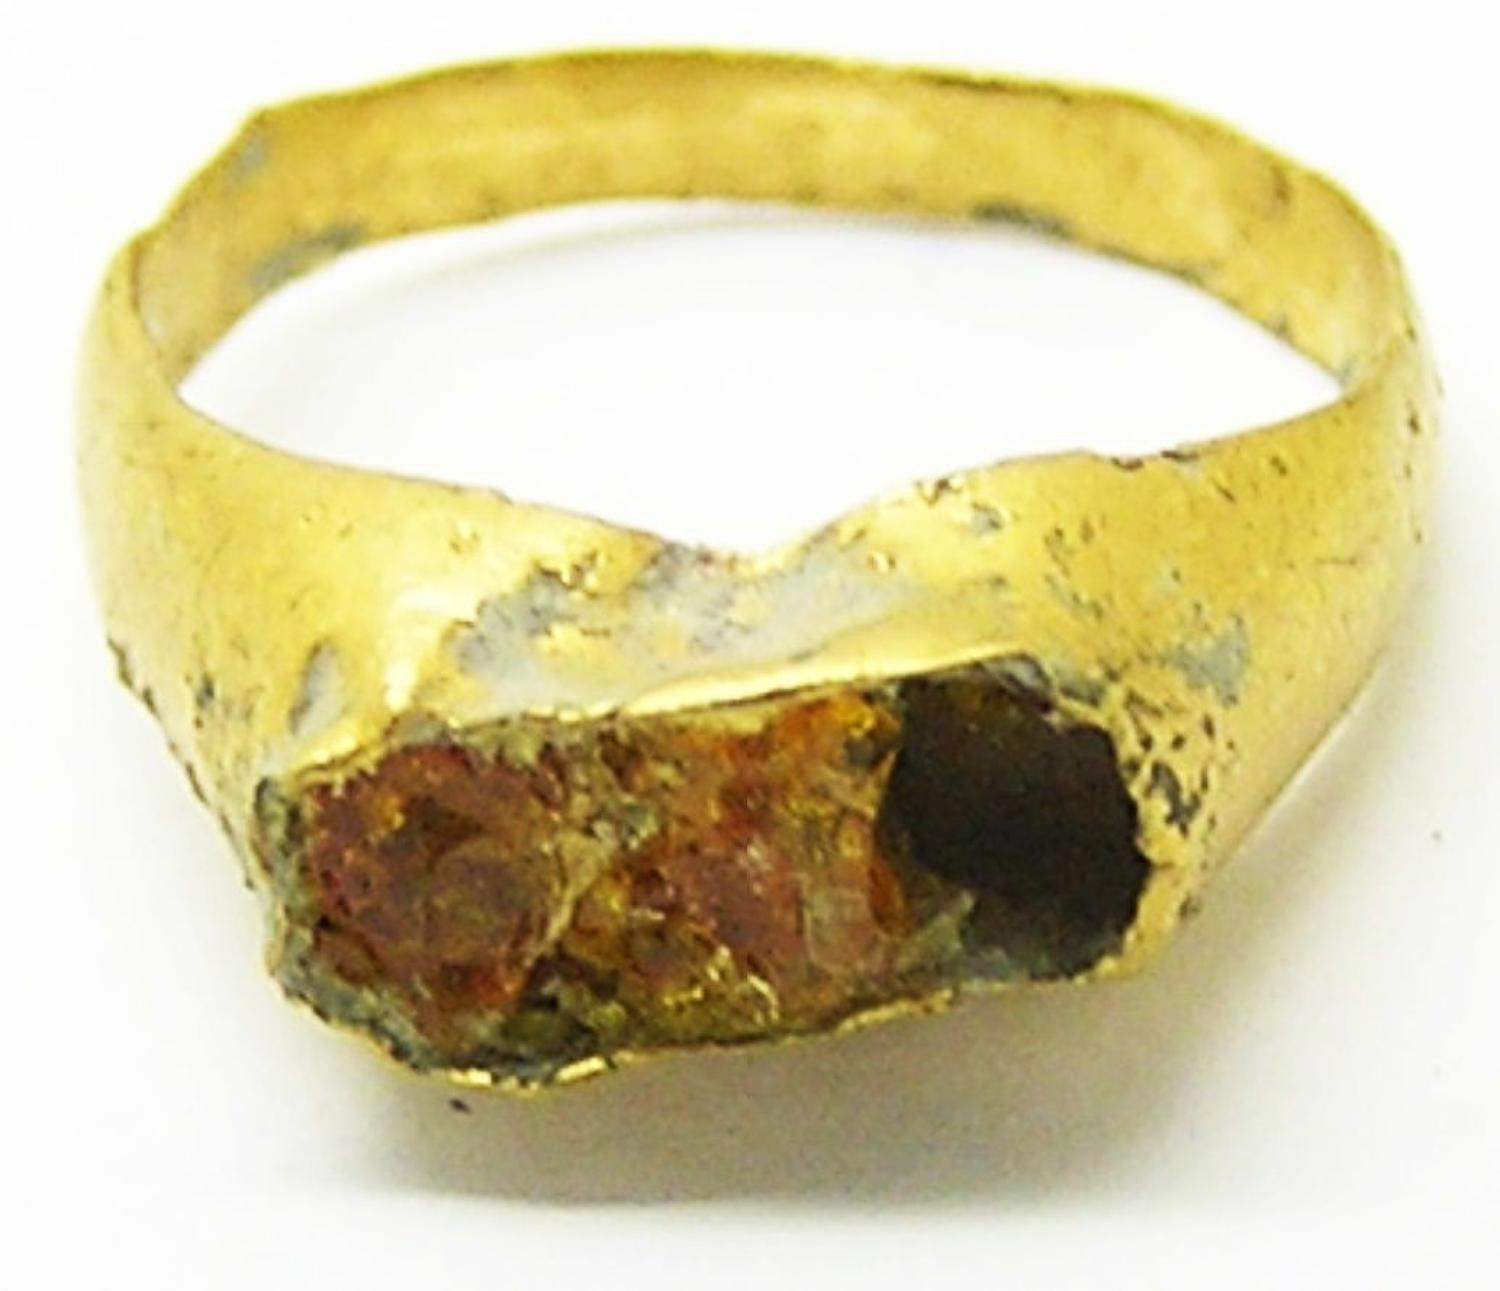 Roman child's gold finger ring set with amber